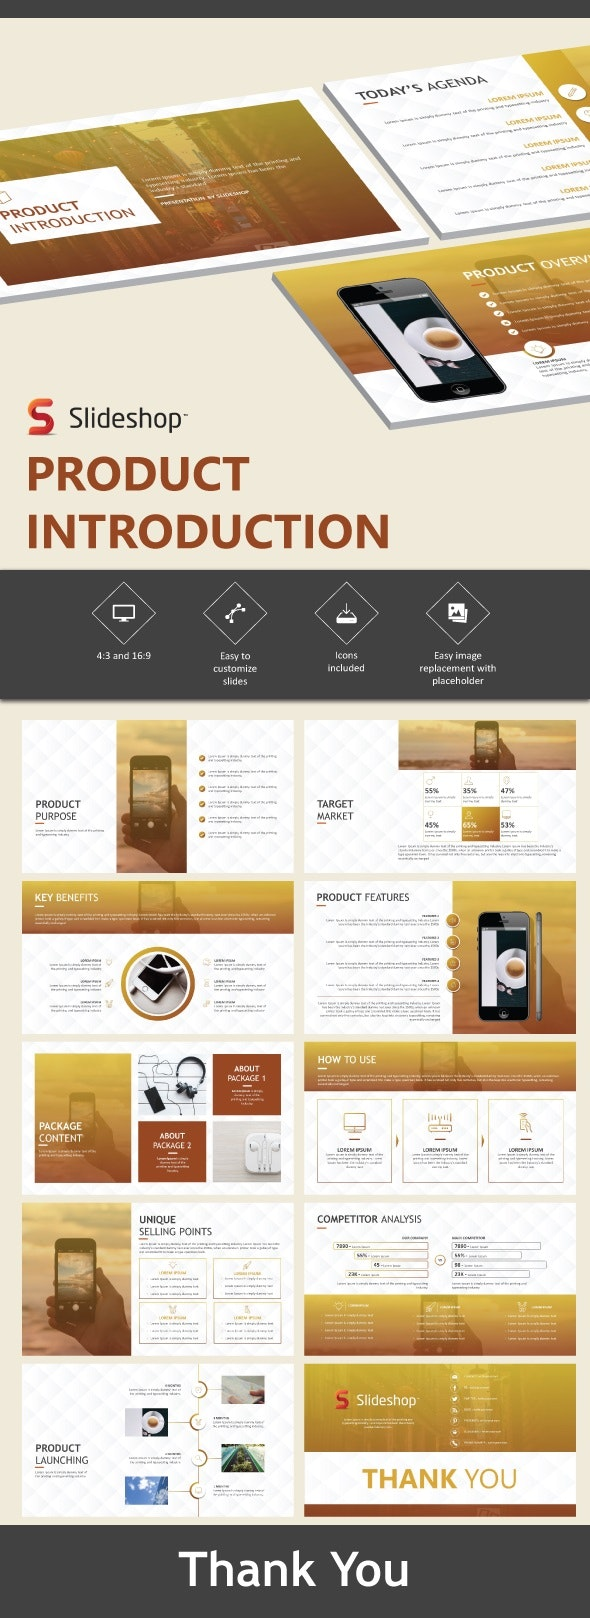 Product Introduction - Presentation Templates